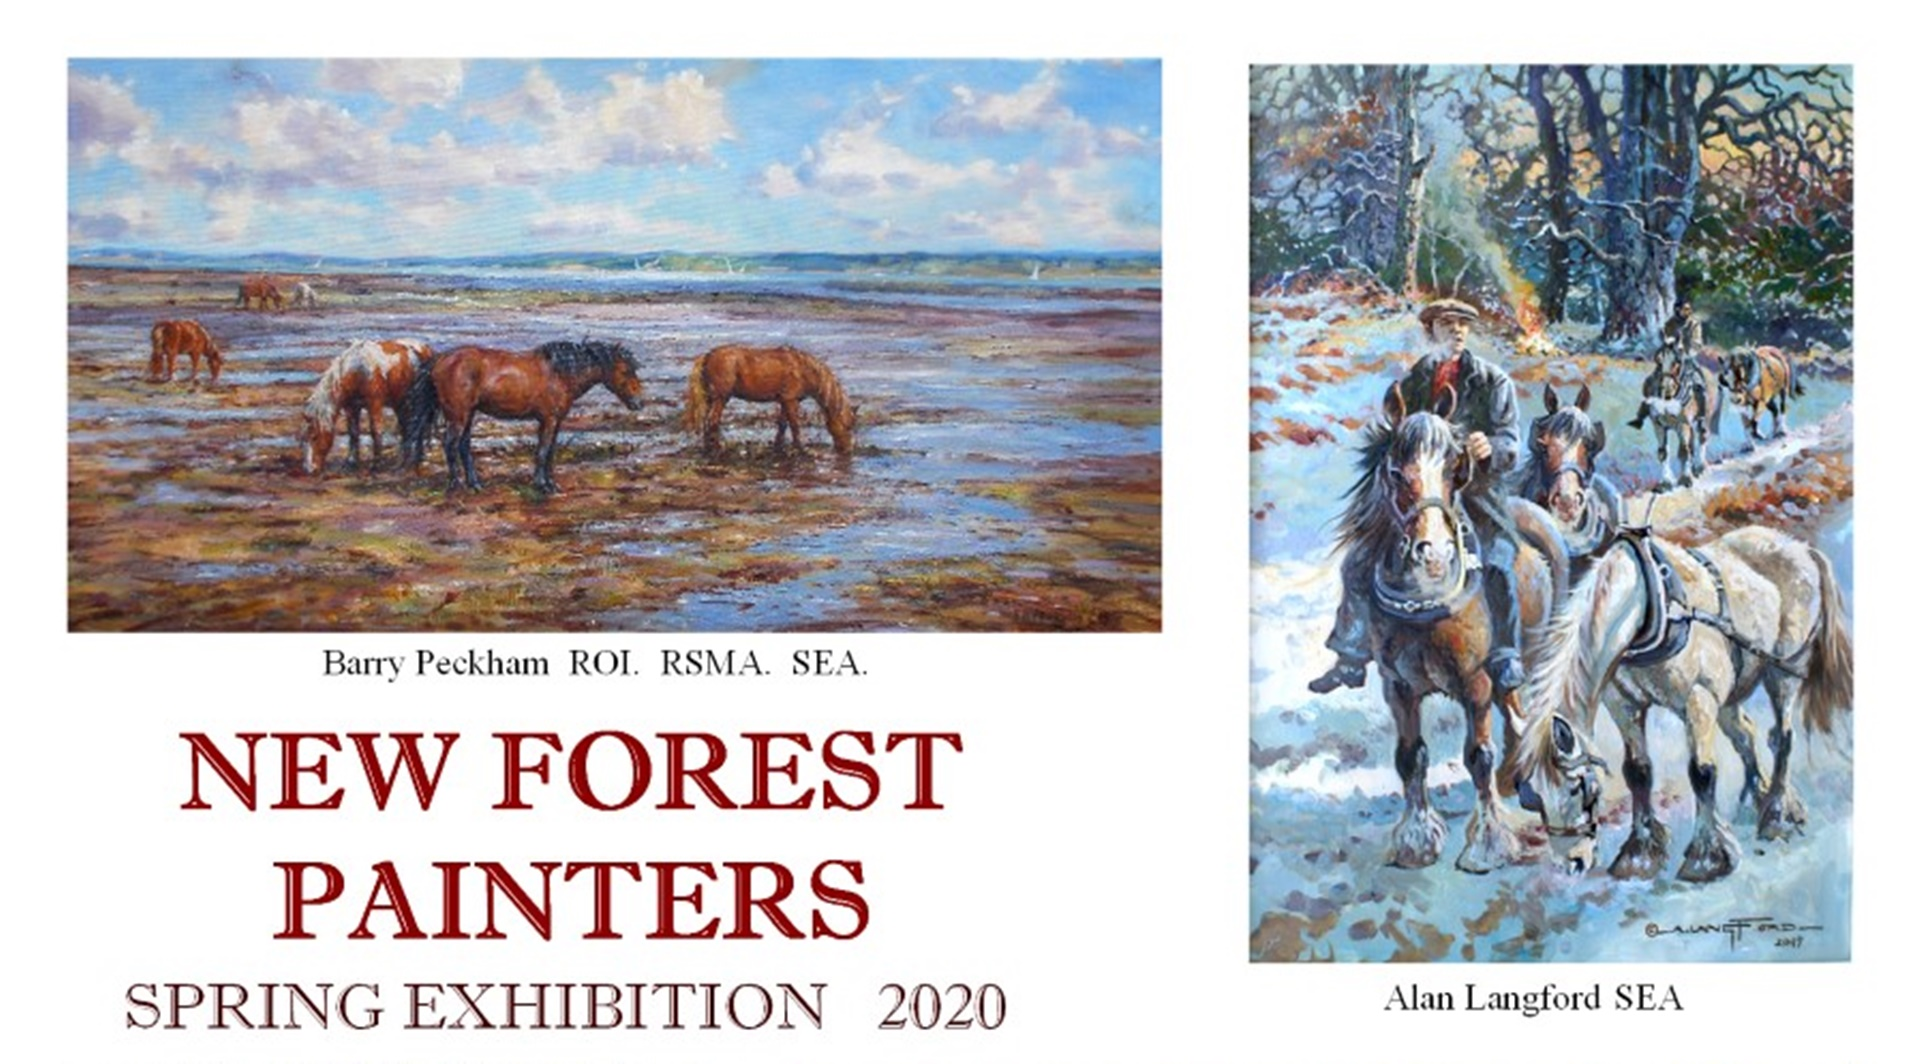 New Forest Painters - Spring Exhibition 2020